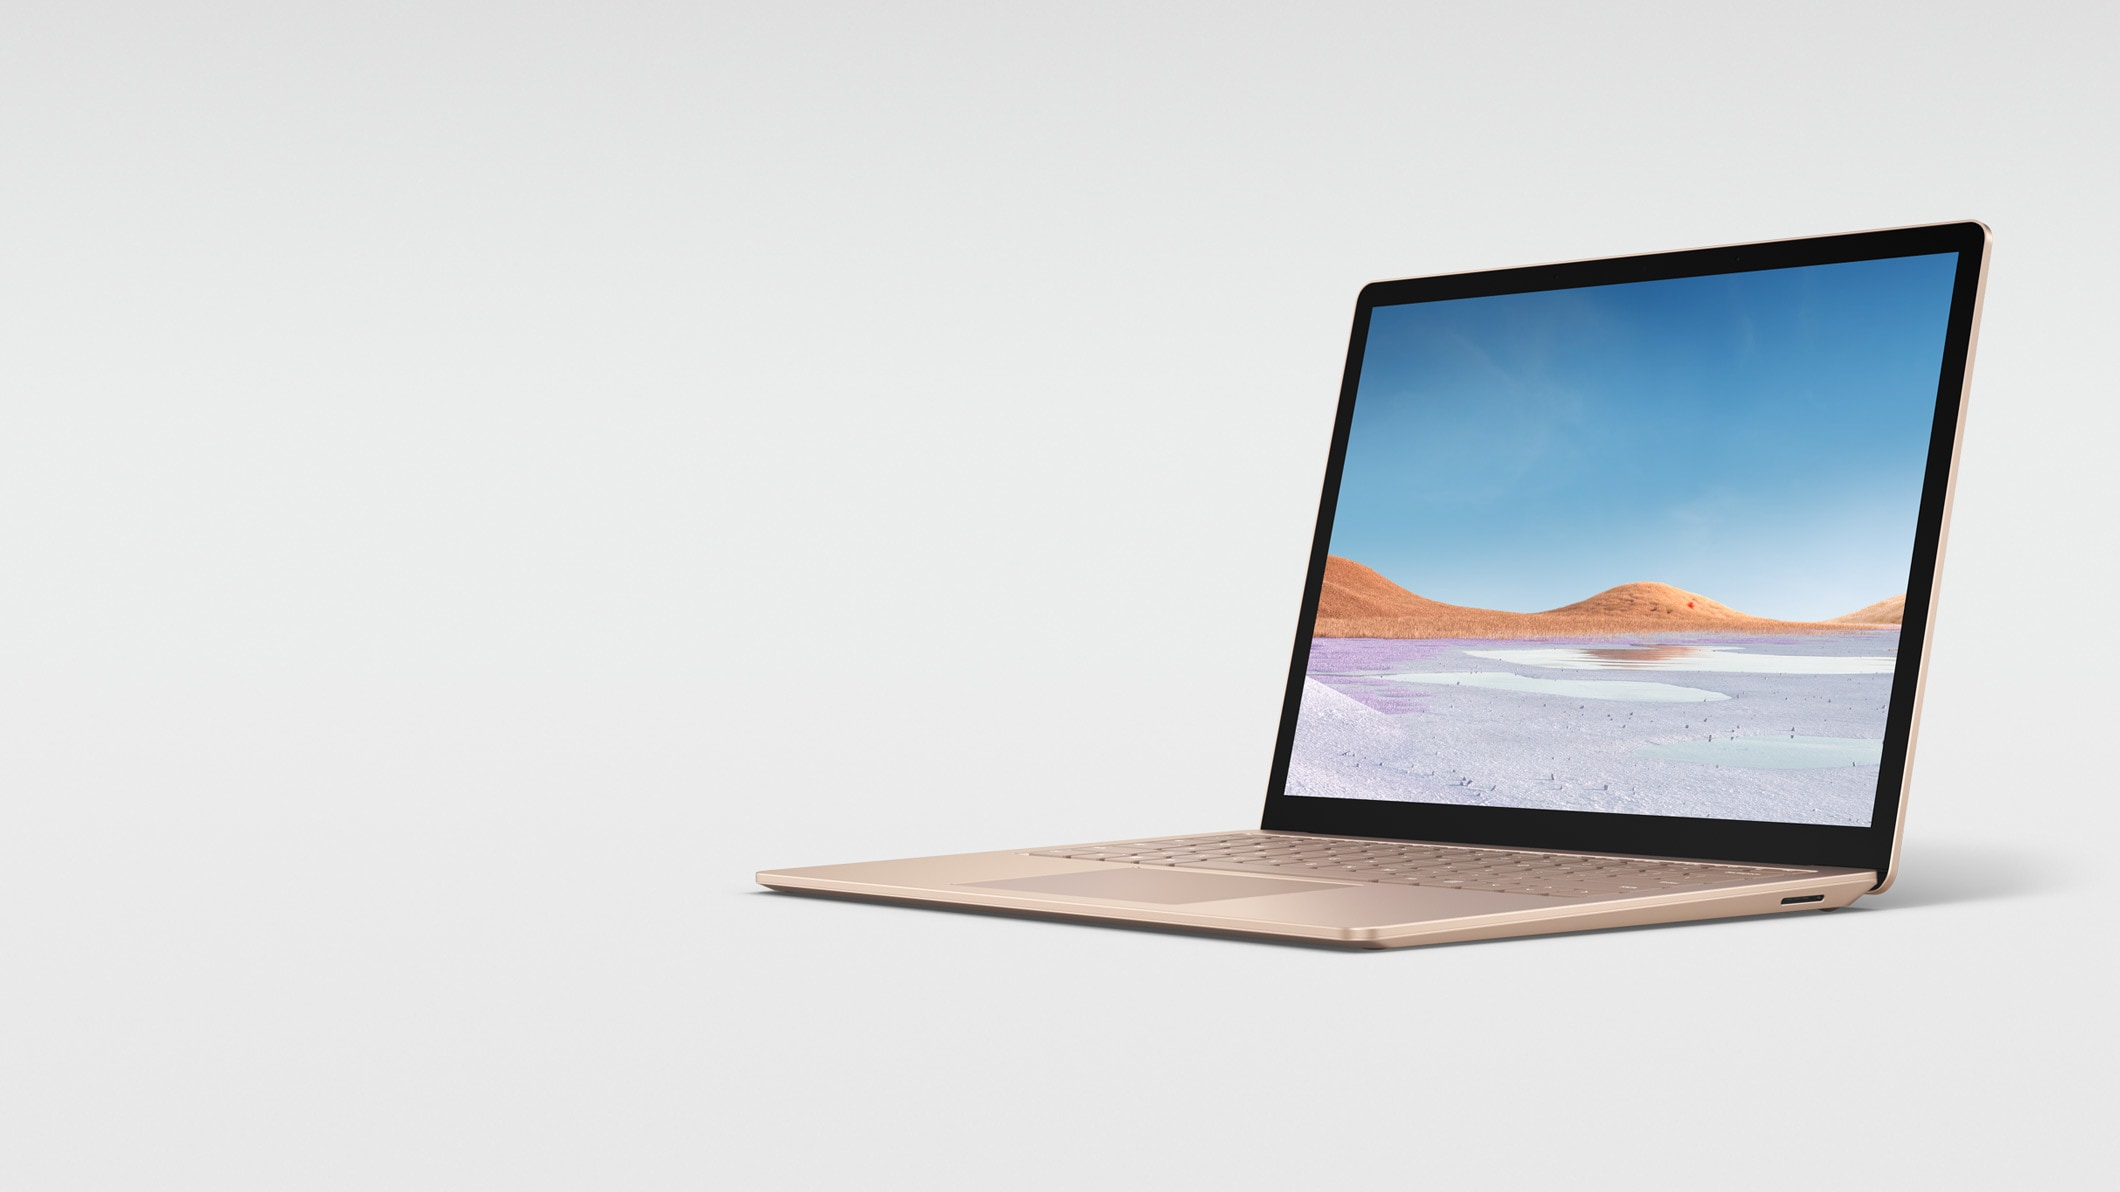 13.5-inch Surface Laptop 3 in Sandstone